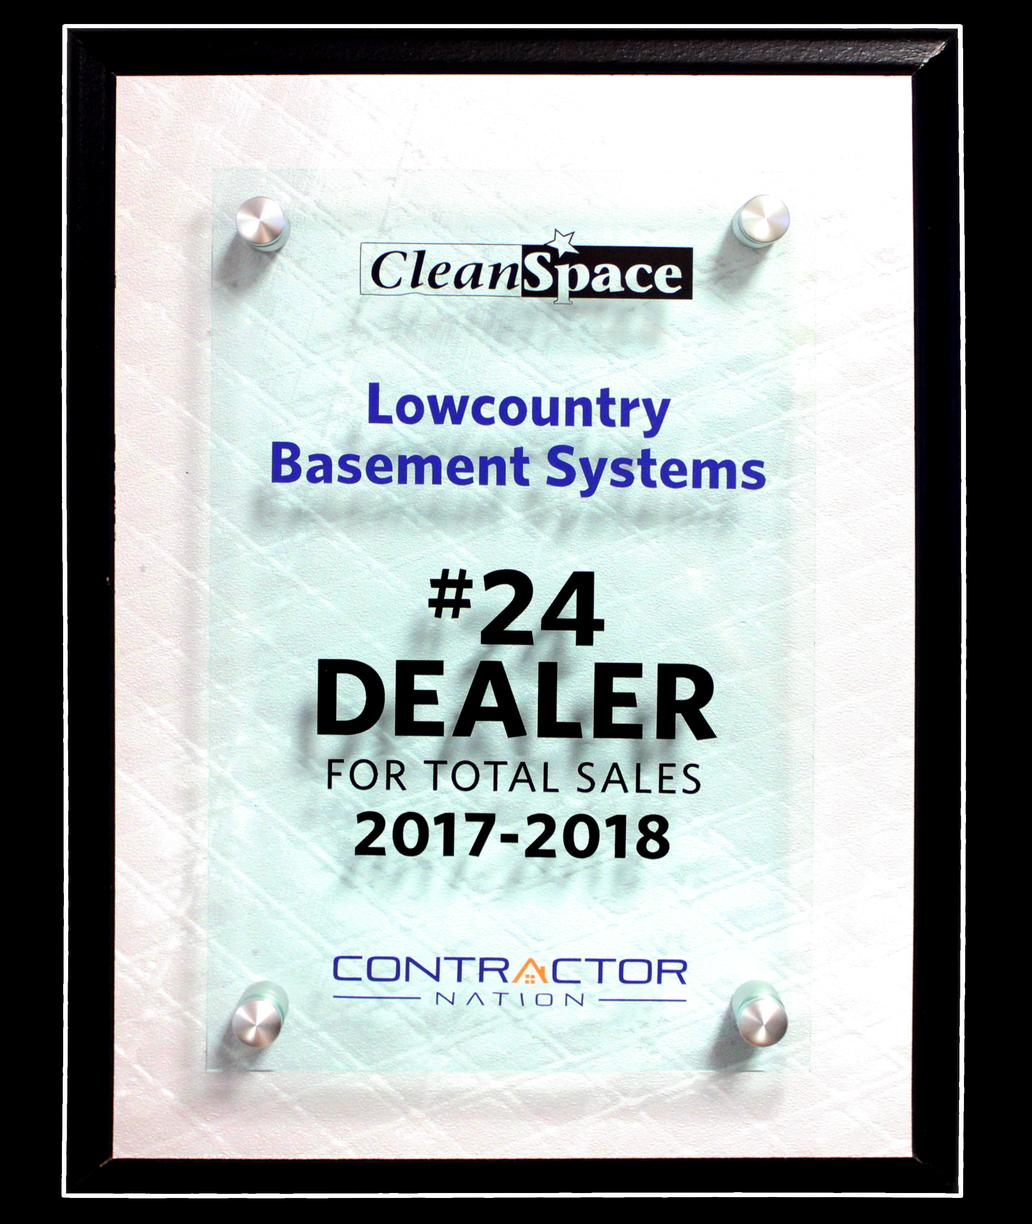 #24 CleanSpace Dealer in Total Sales